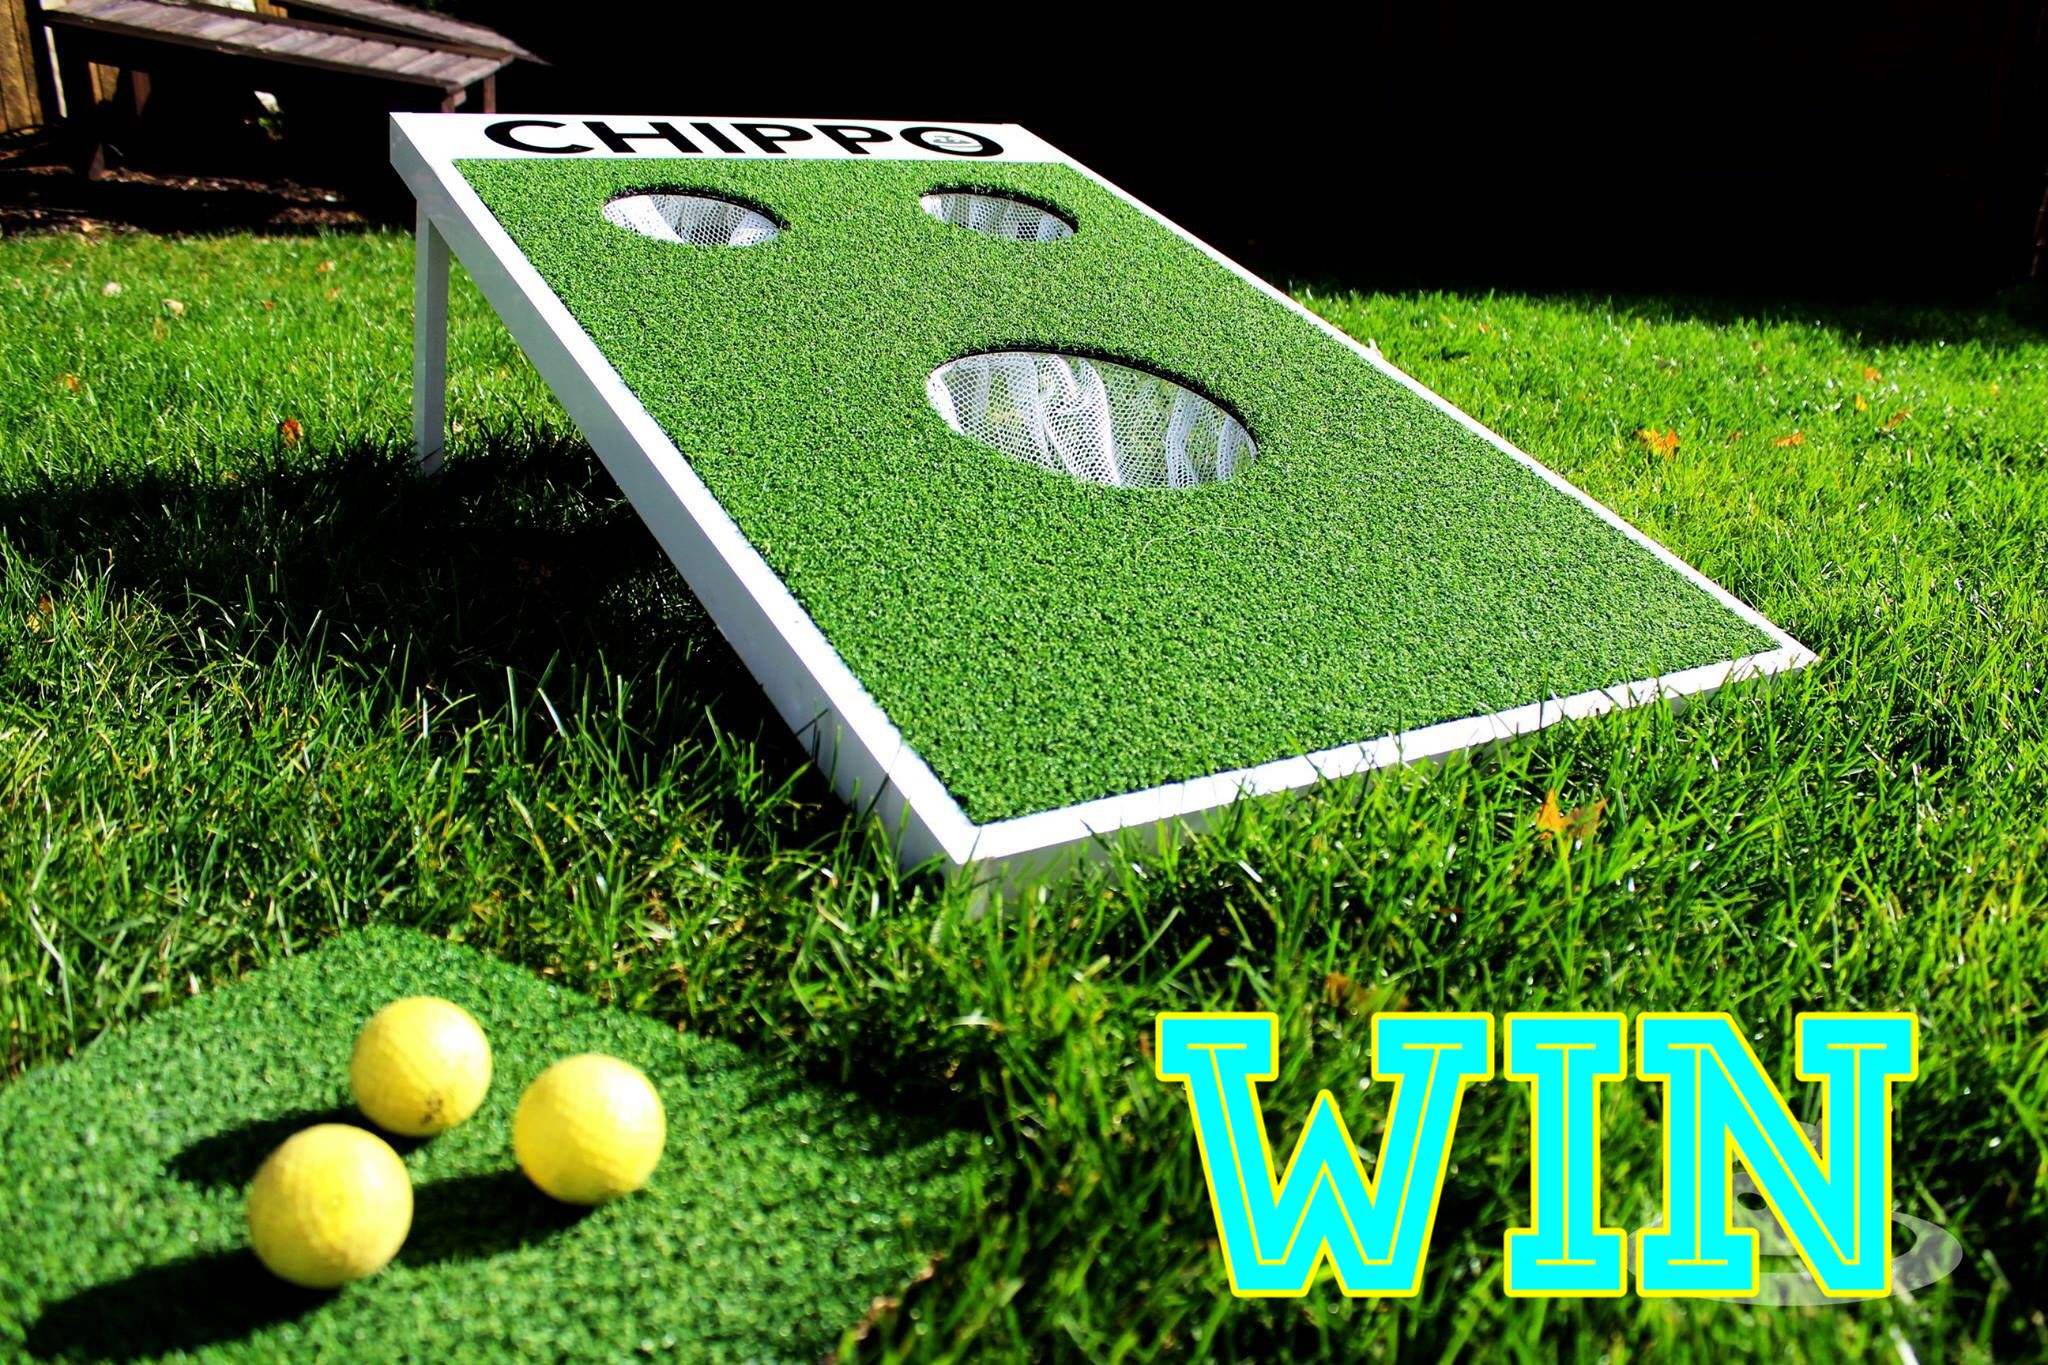 Enter To Win The Chippo Golf Game That Challenges You Go Chip Golf Balls Into The Holes To Win Enter On Our Facebook Ww Giveaway Contest Golf Game Golf Ball